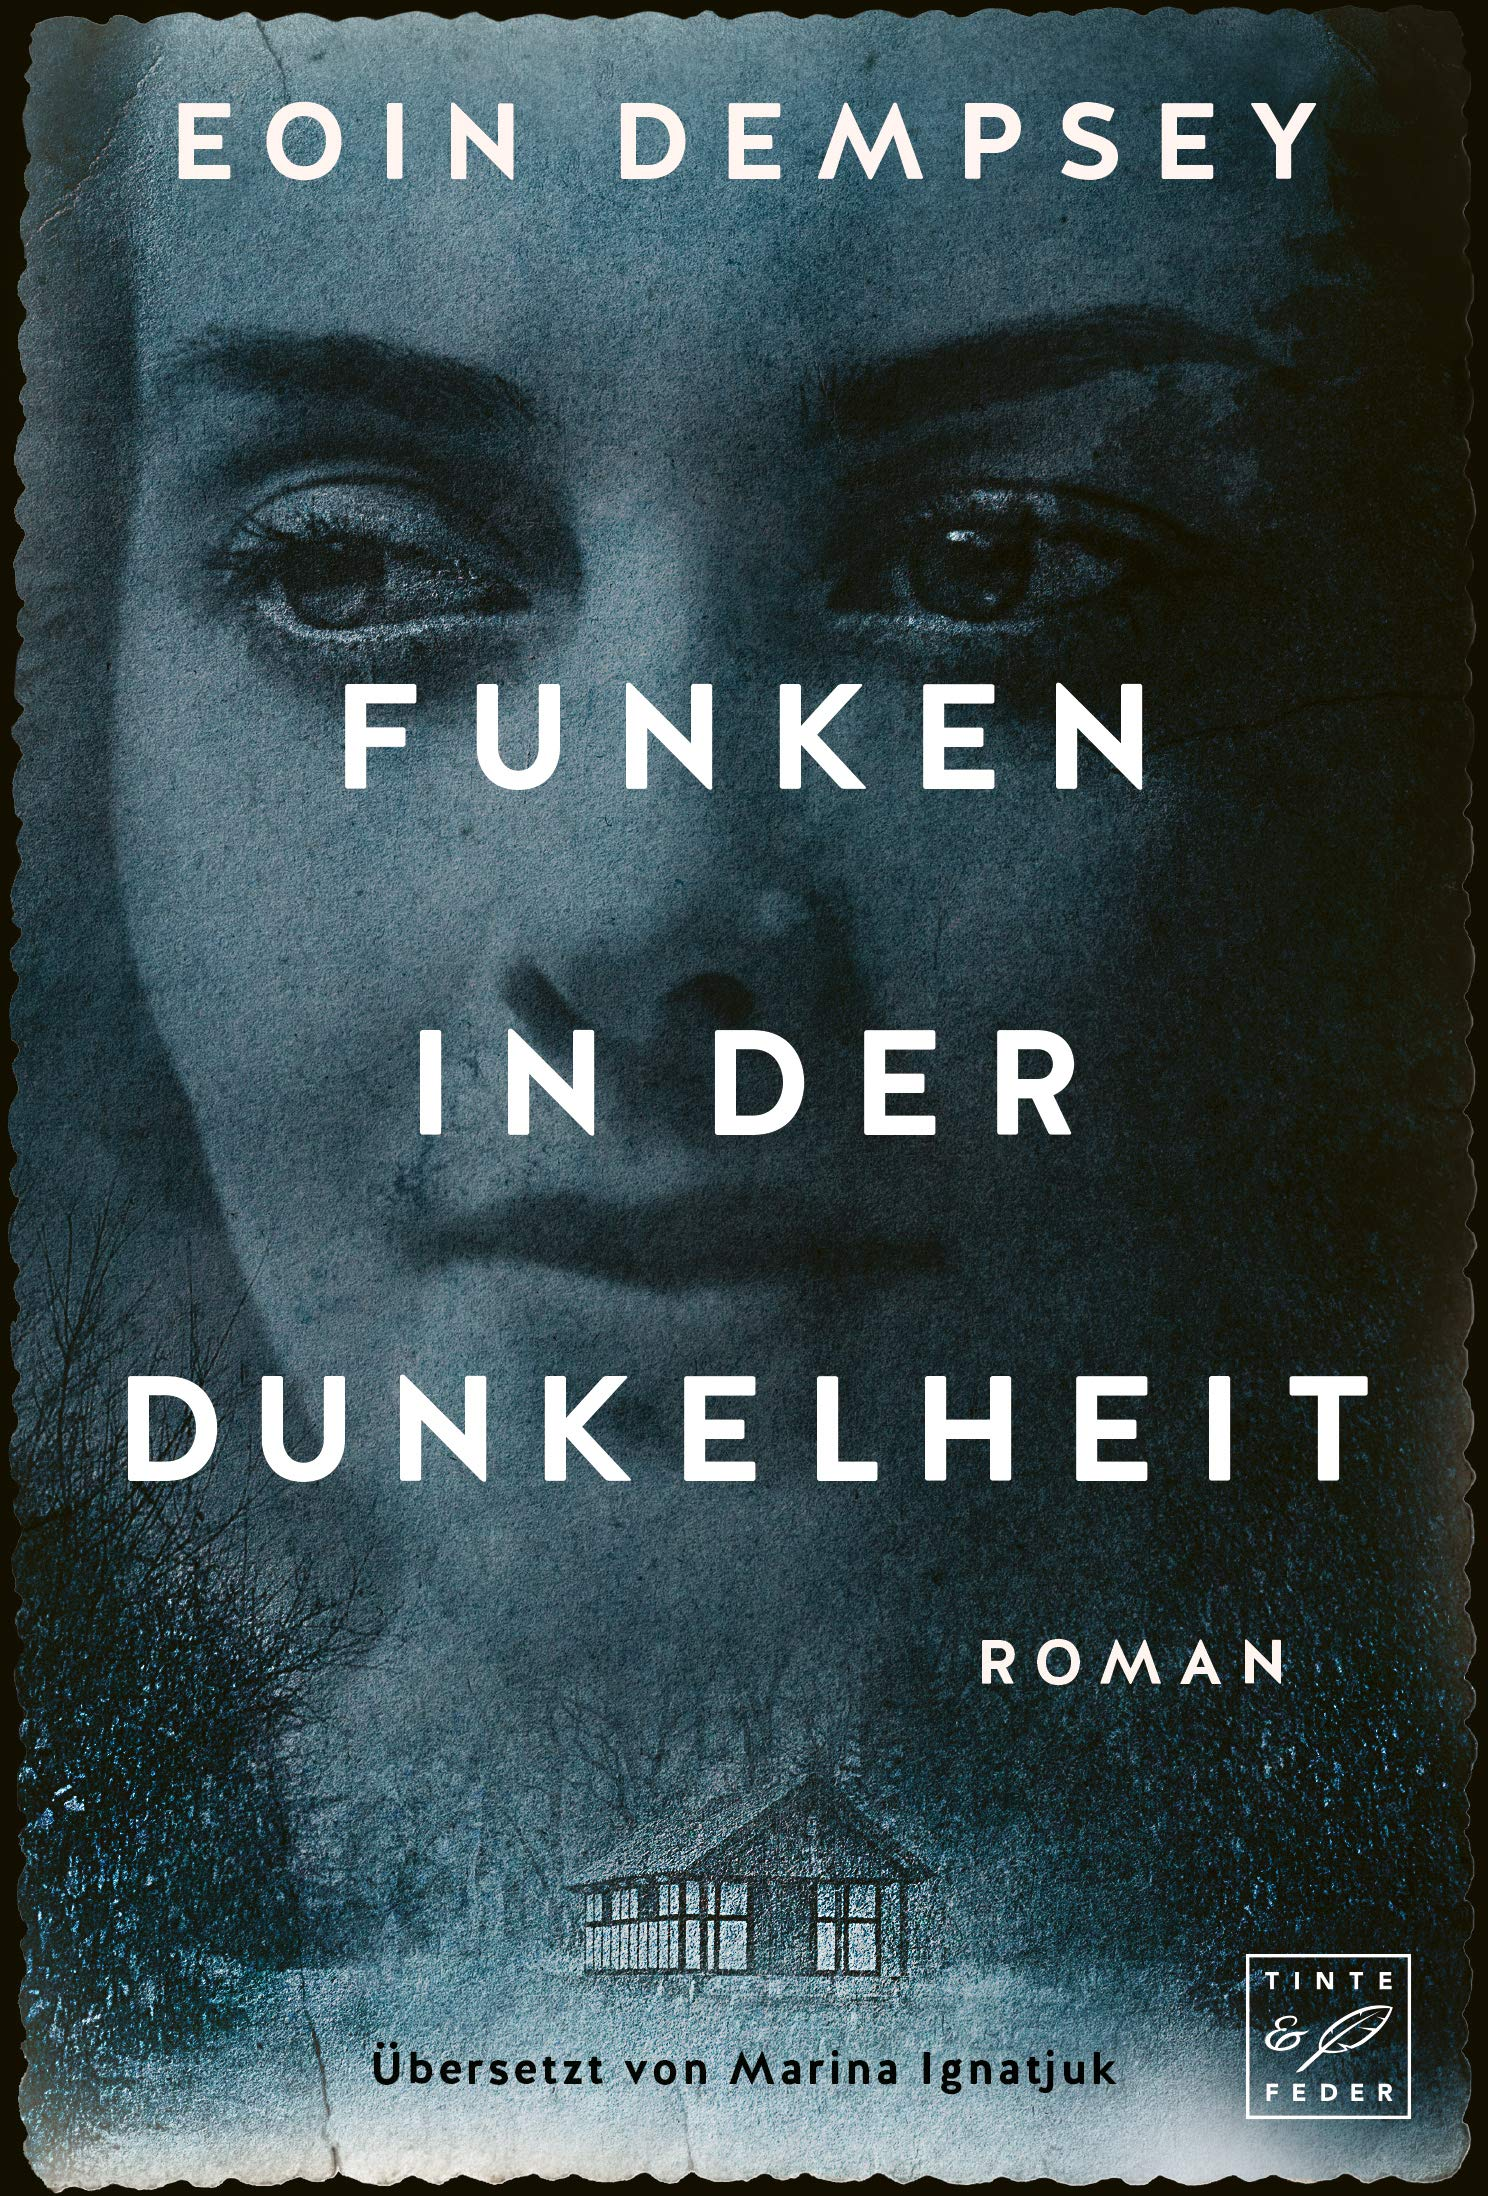 FUNKEN IN DER DUNKELHEIT